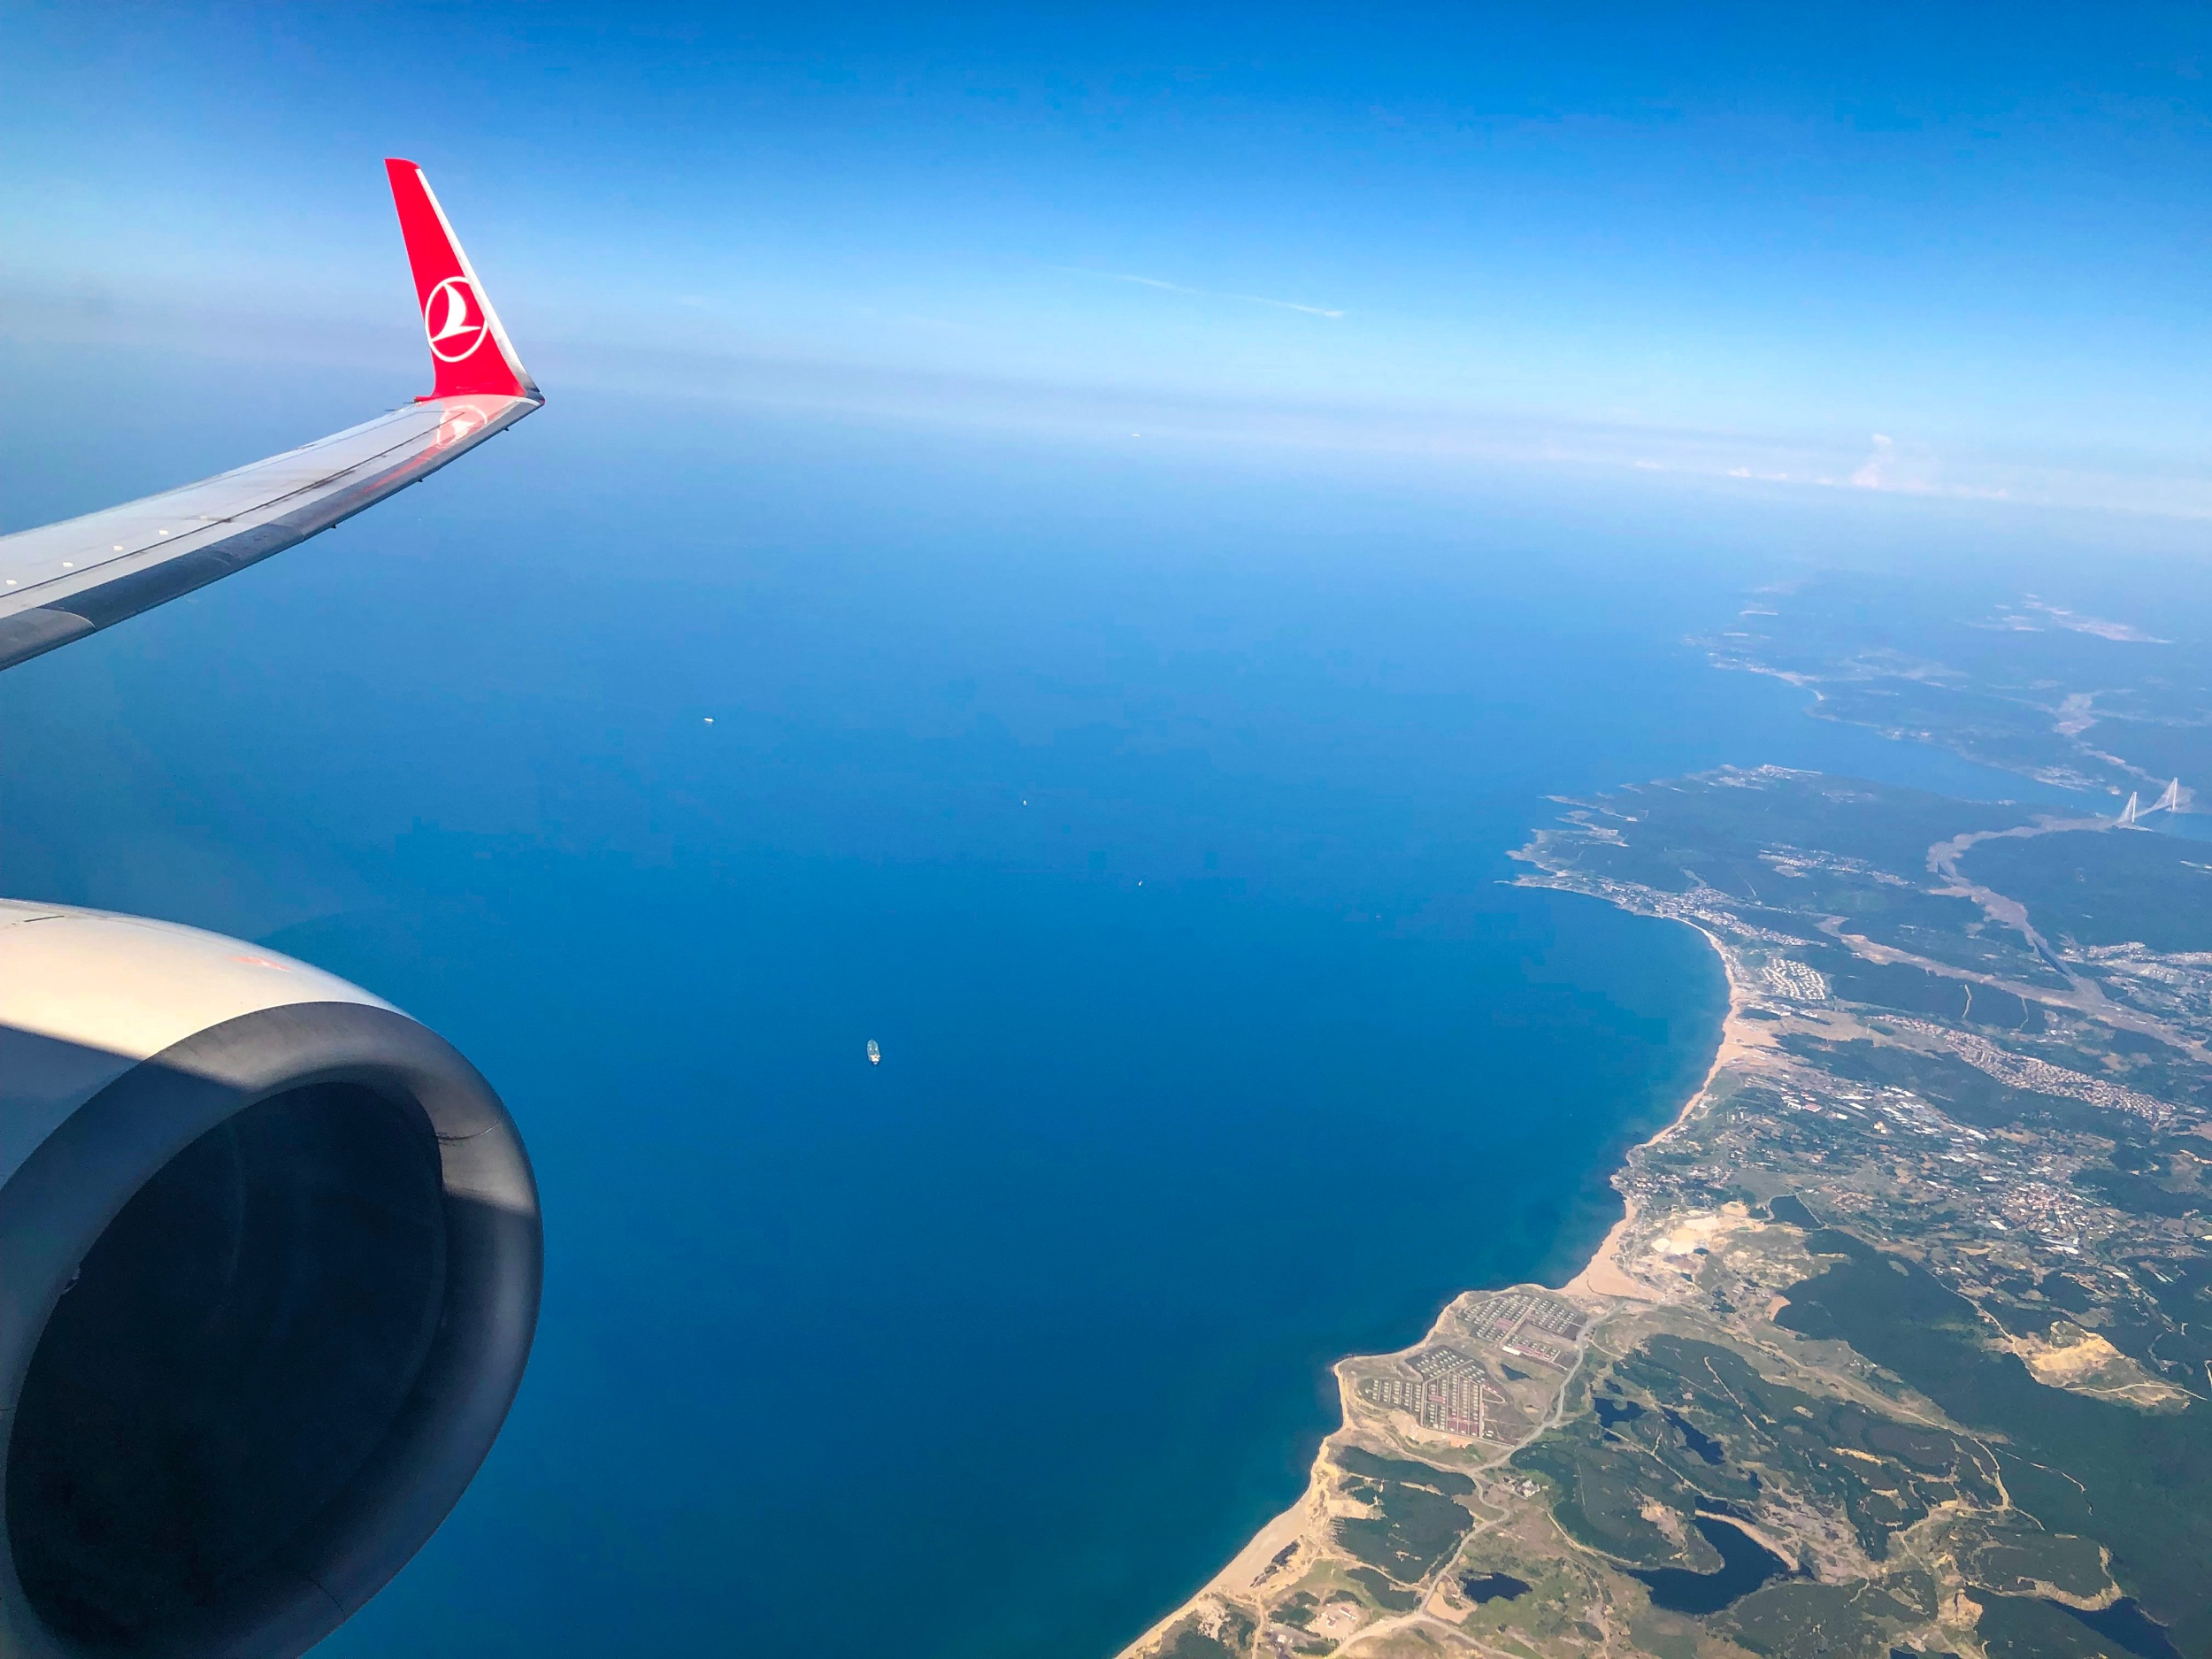 On approach into Milas-Bodrum Airport - Turkish Airlines Business Class